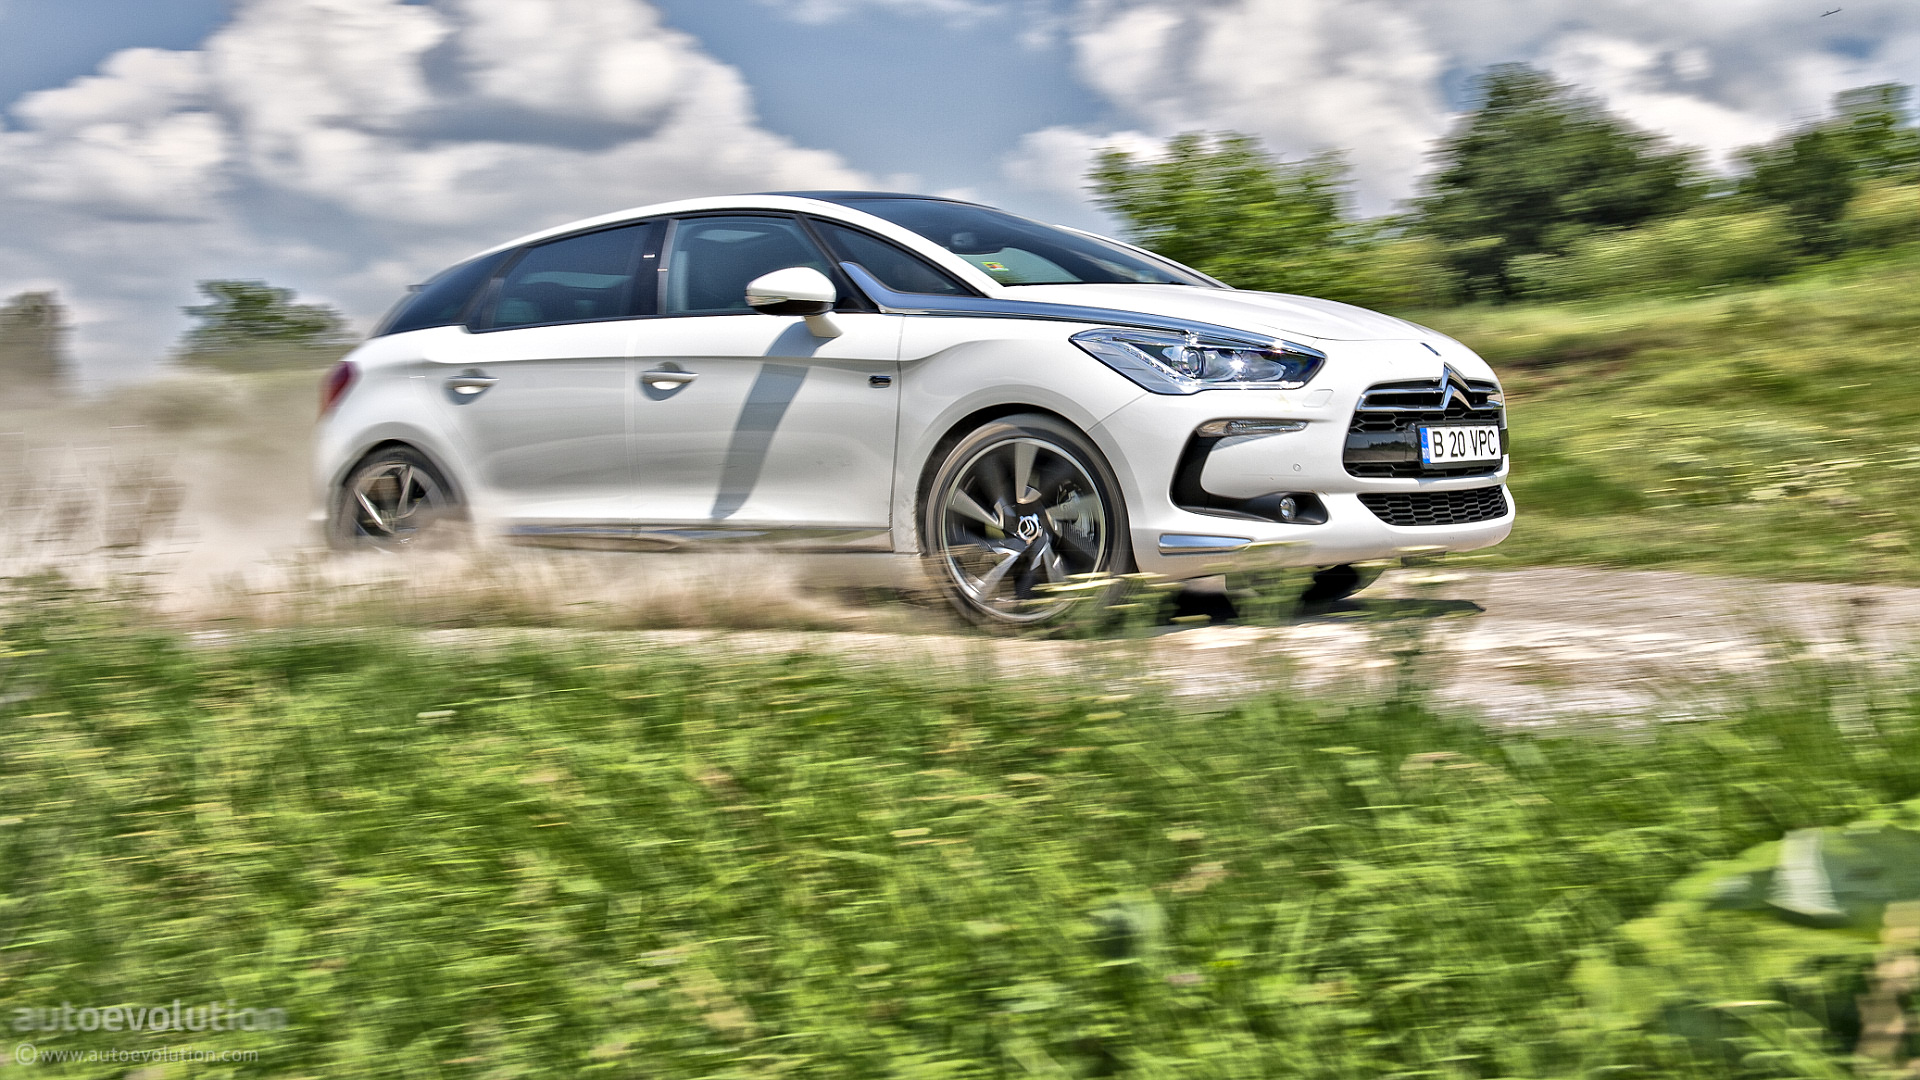 Citroen Ds5 2019 >> Peugeot-Citroen to Launch First Plug-in Hybrid in 2019, EV Replacement Arriving in 2020 ...